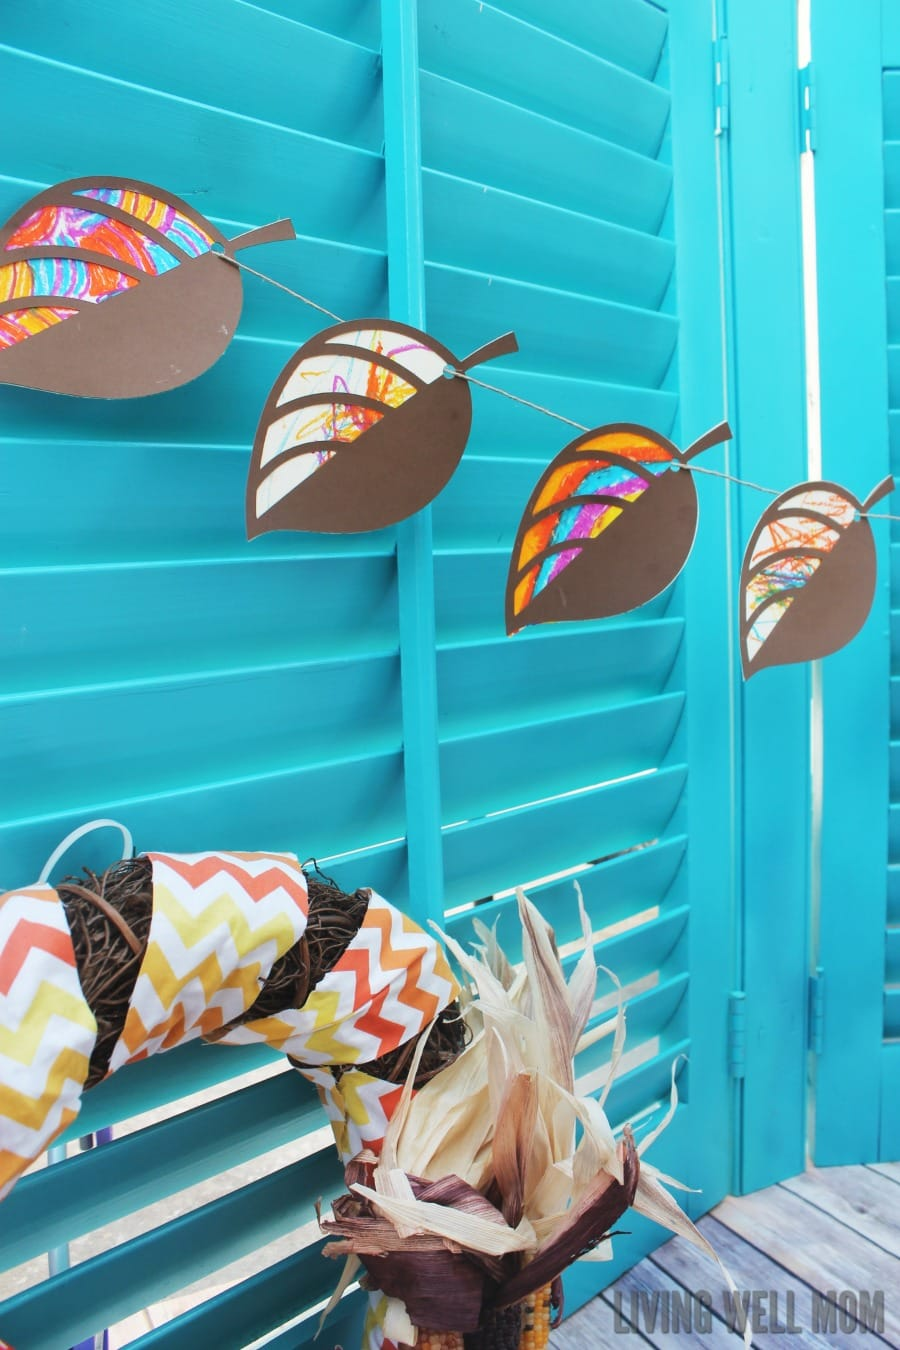 How to make a fun painted leaf garland with kids: This fun craft is a great way to usher in the fall season, whether you have beautiful autumn leaves or not! It's so easy even toddlers can participate.